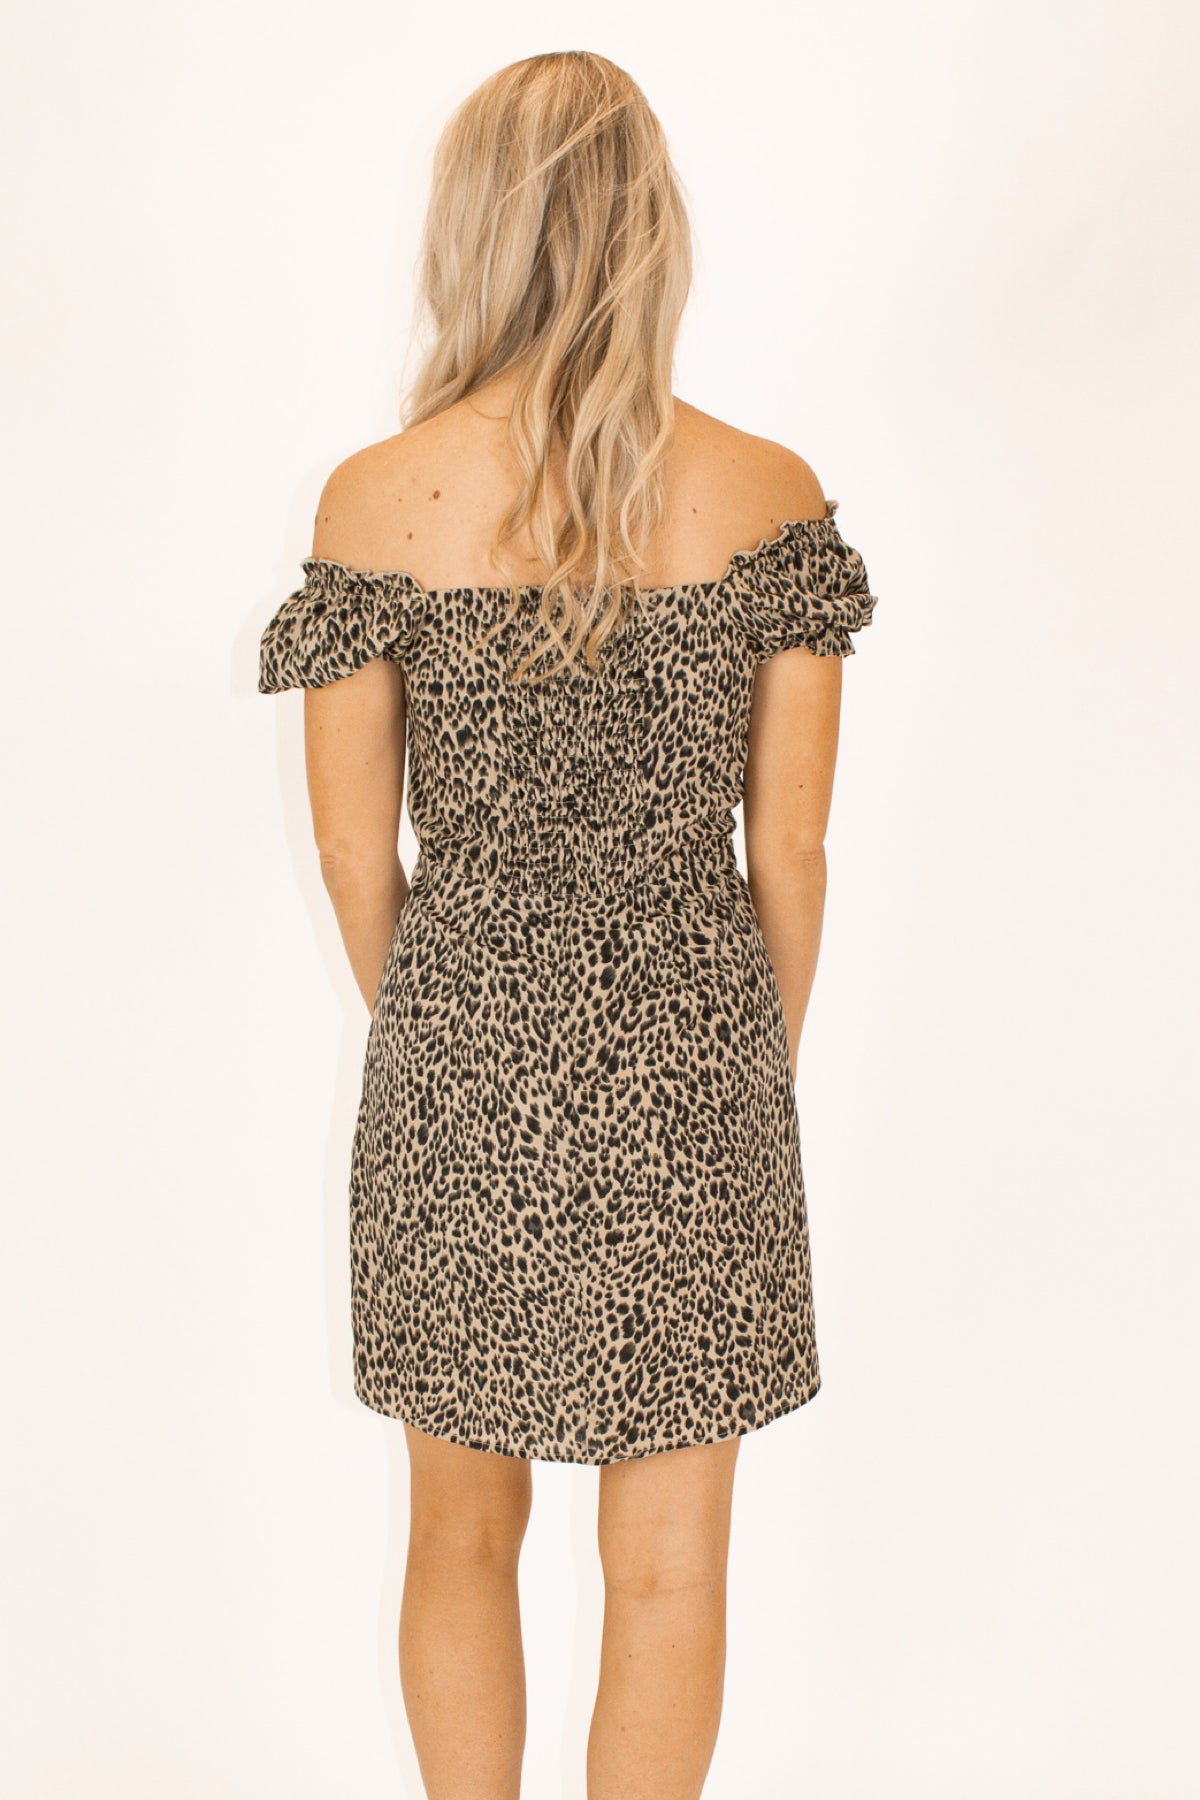 LEOPARD PRINT DRESS / FINAL CLEARANCE